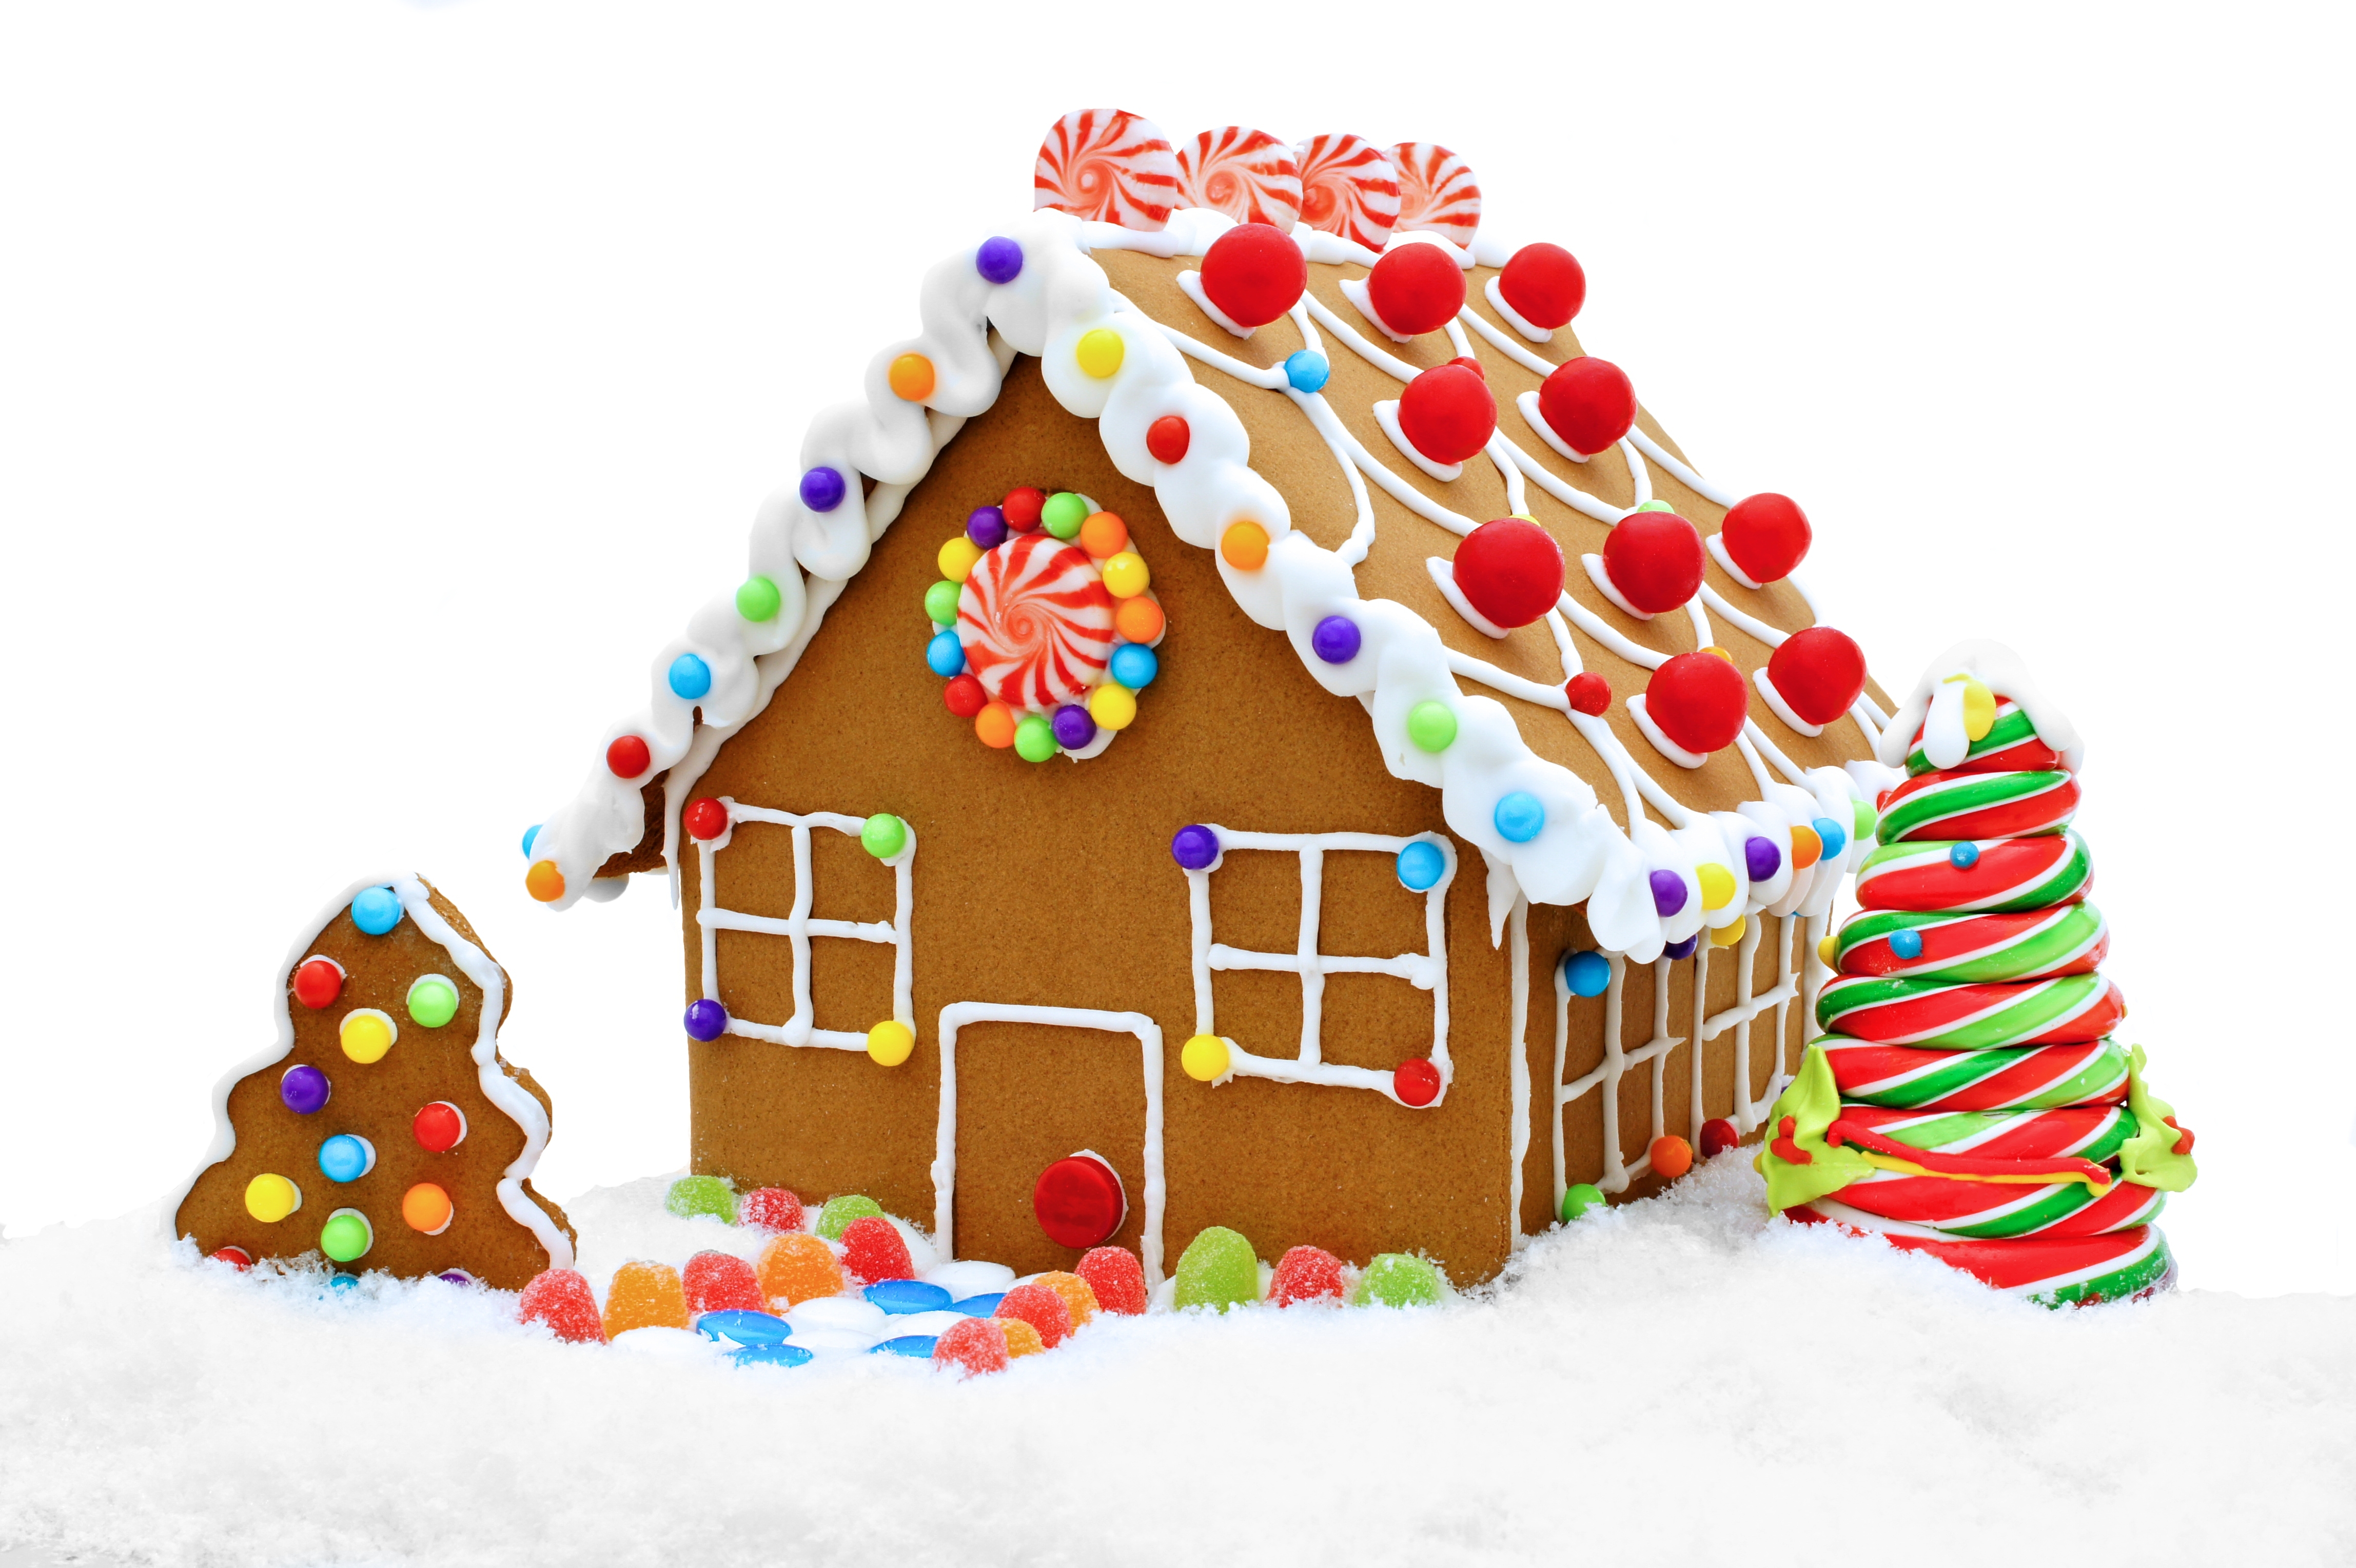 Gingerbread clipart gingerbread village. Free house cliparts download